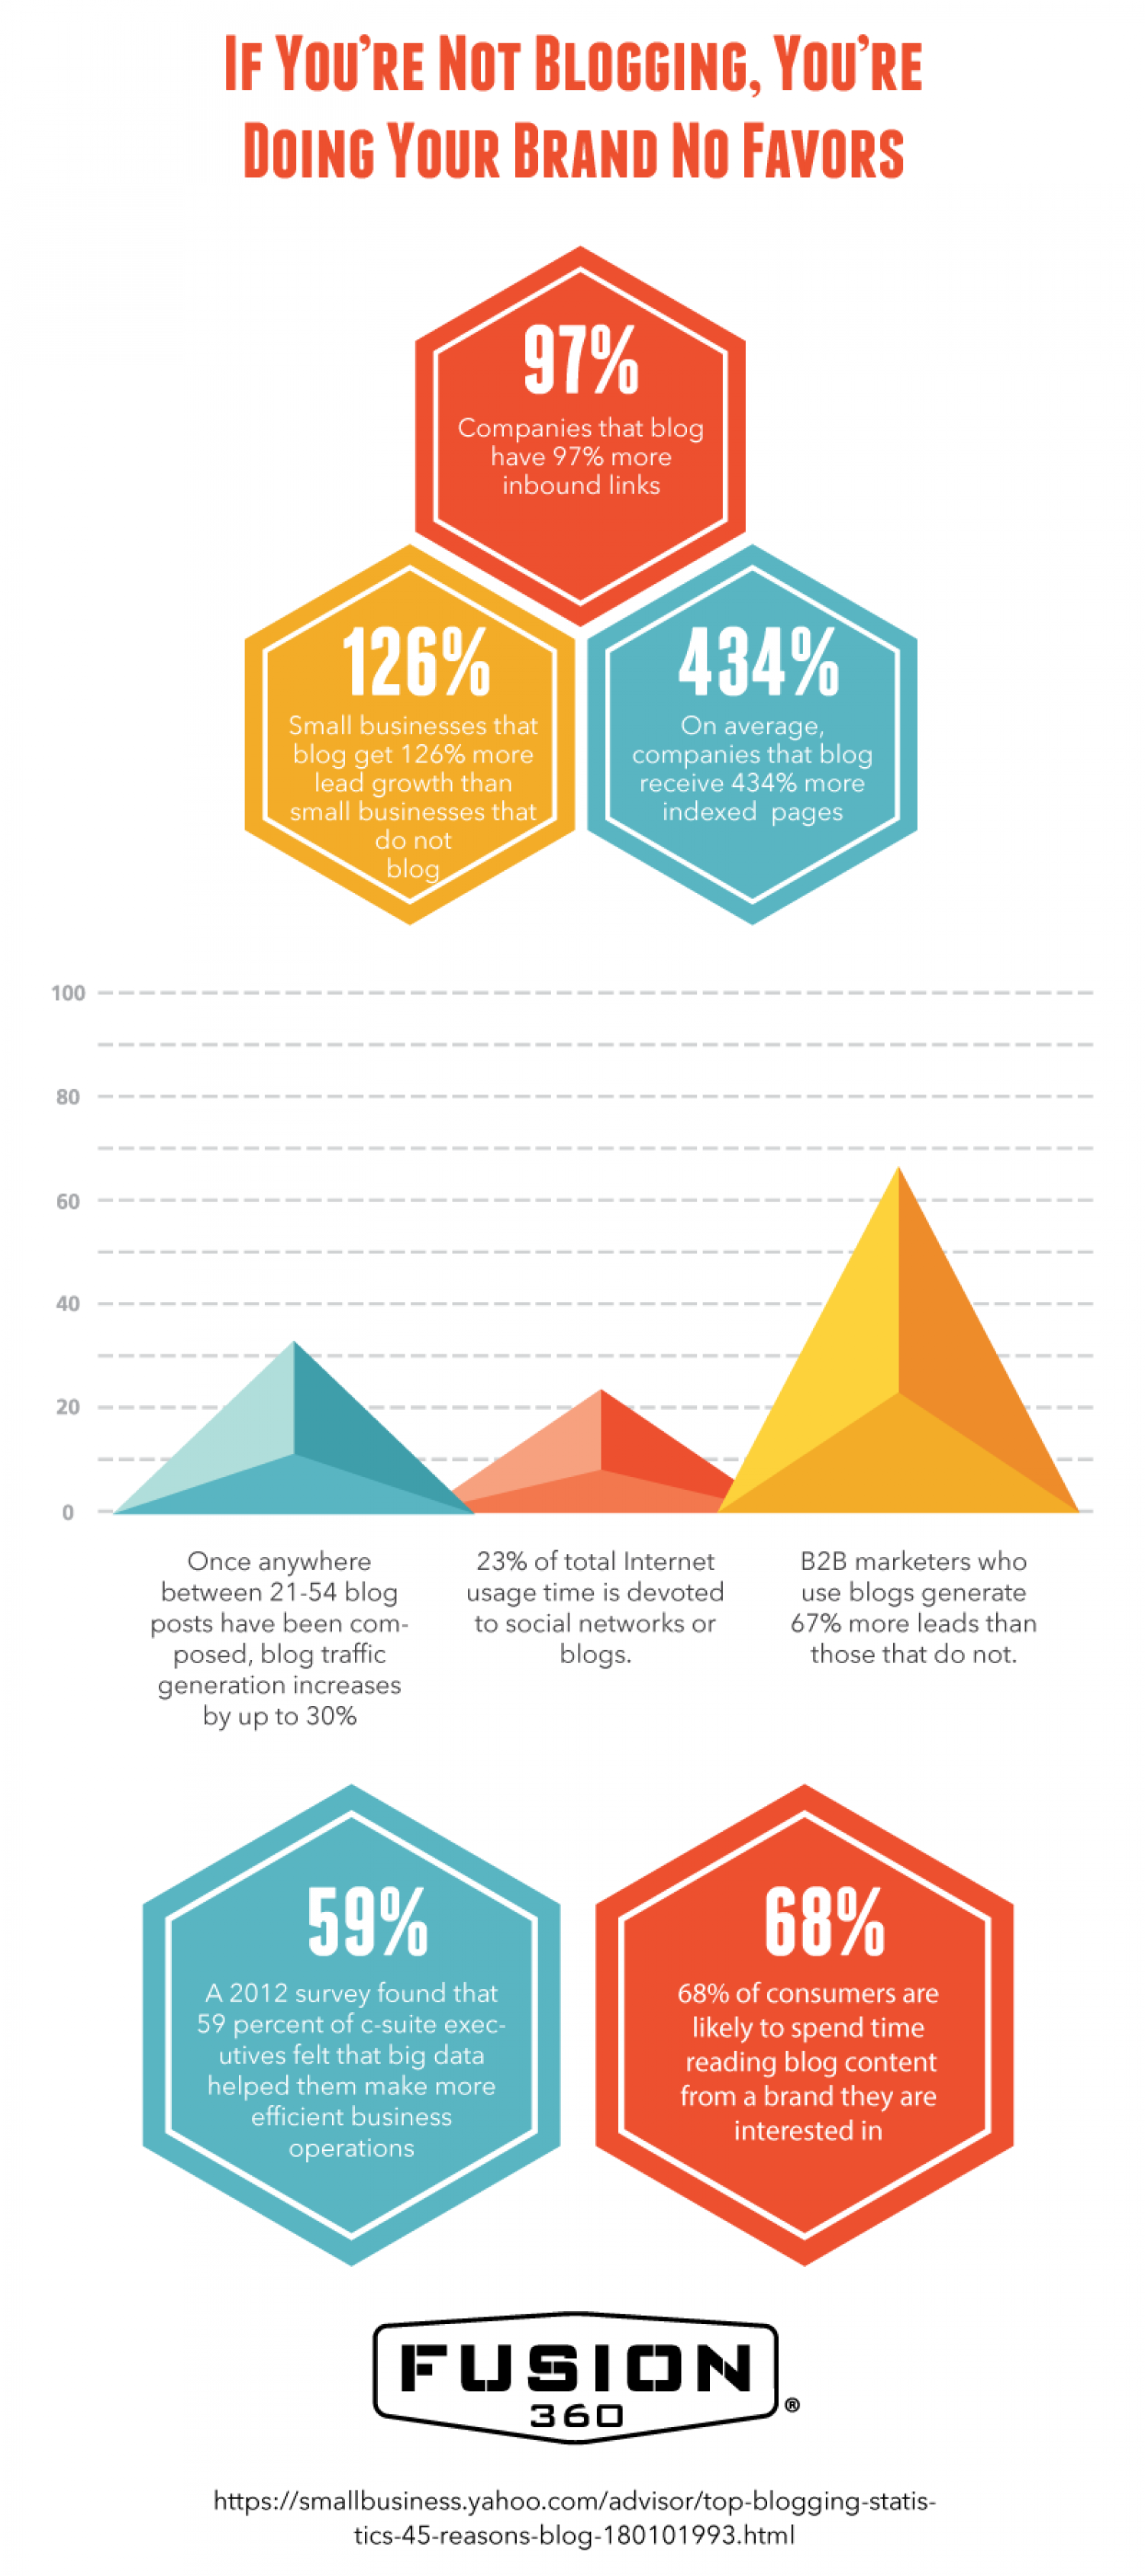 If You're Not Blogging, You're Successfully Doing Your Brand ZERO Favors Infographic